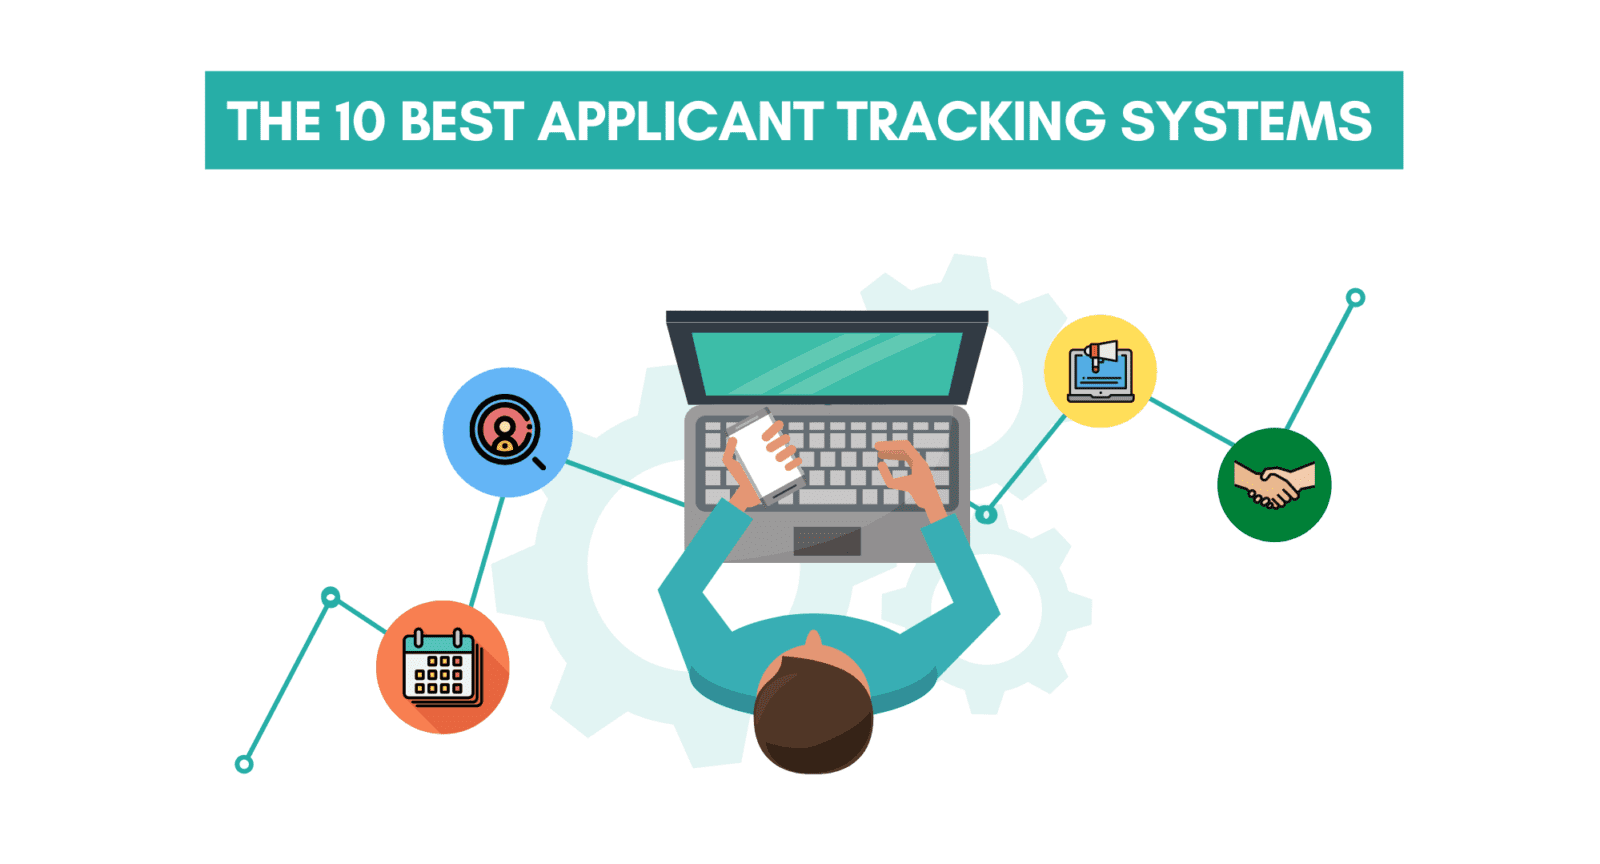 Best applicant tracking systems. What are some of the best applicant tracking systems. Best 10 applicant tracking systems. Applicant tracking system.